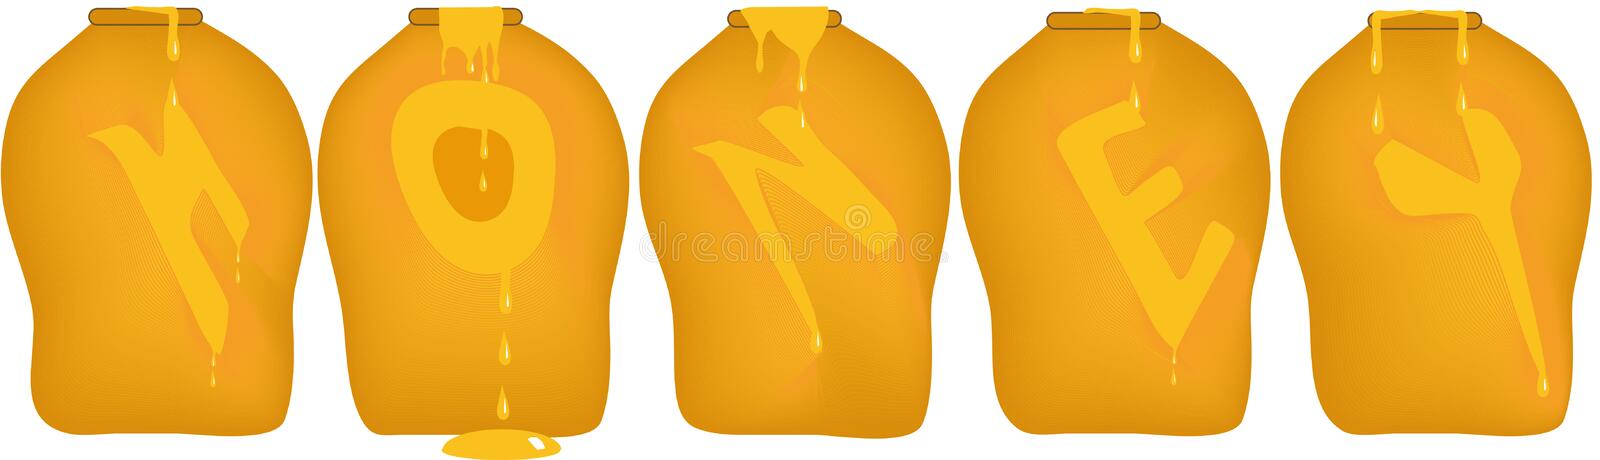 Honey Pots. Five honey pots or jars, oozing and dripping the word Honey a letter at a time stock illustration